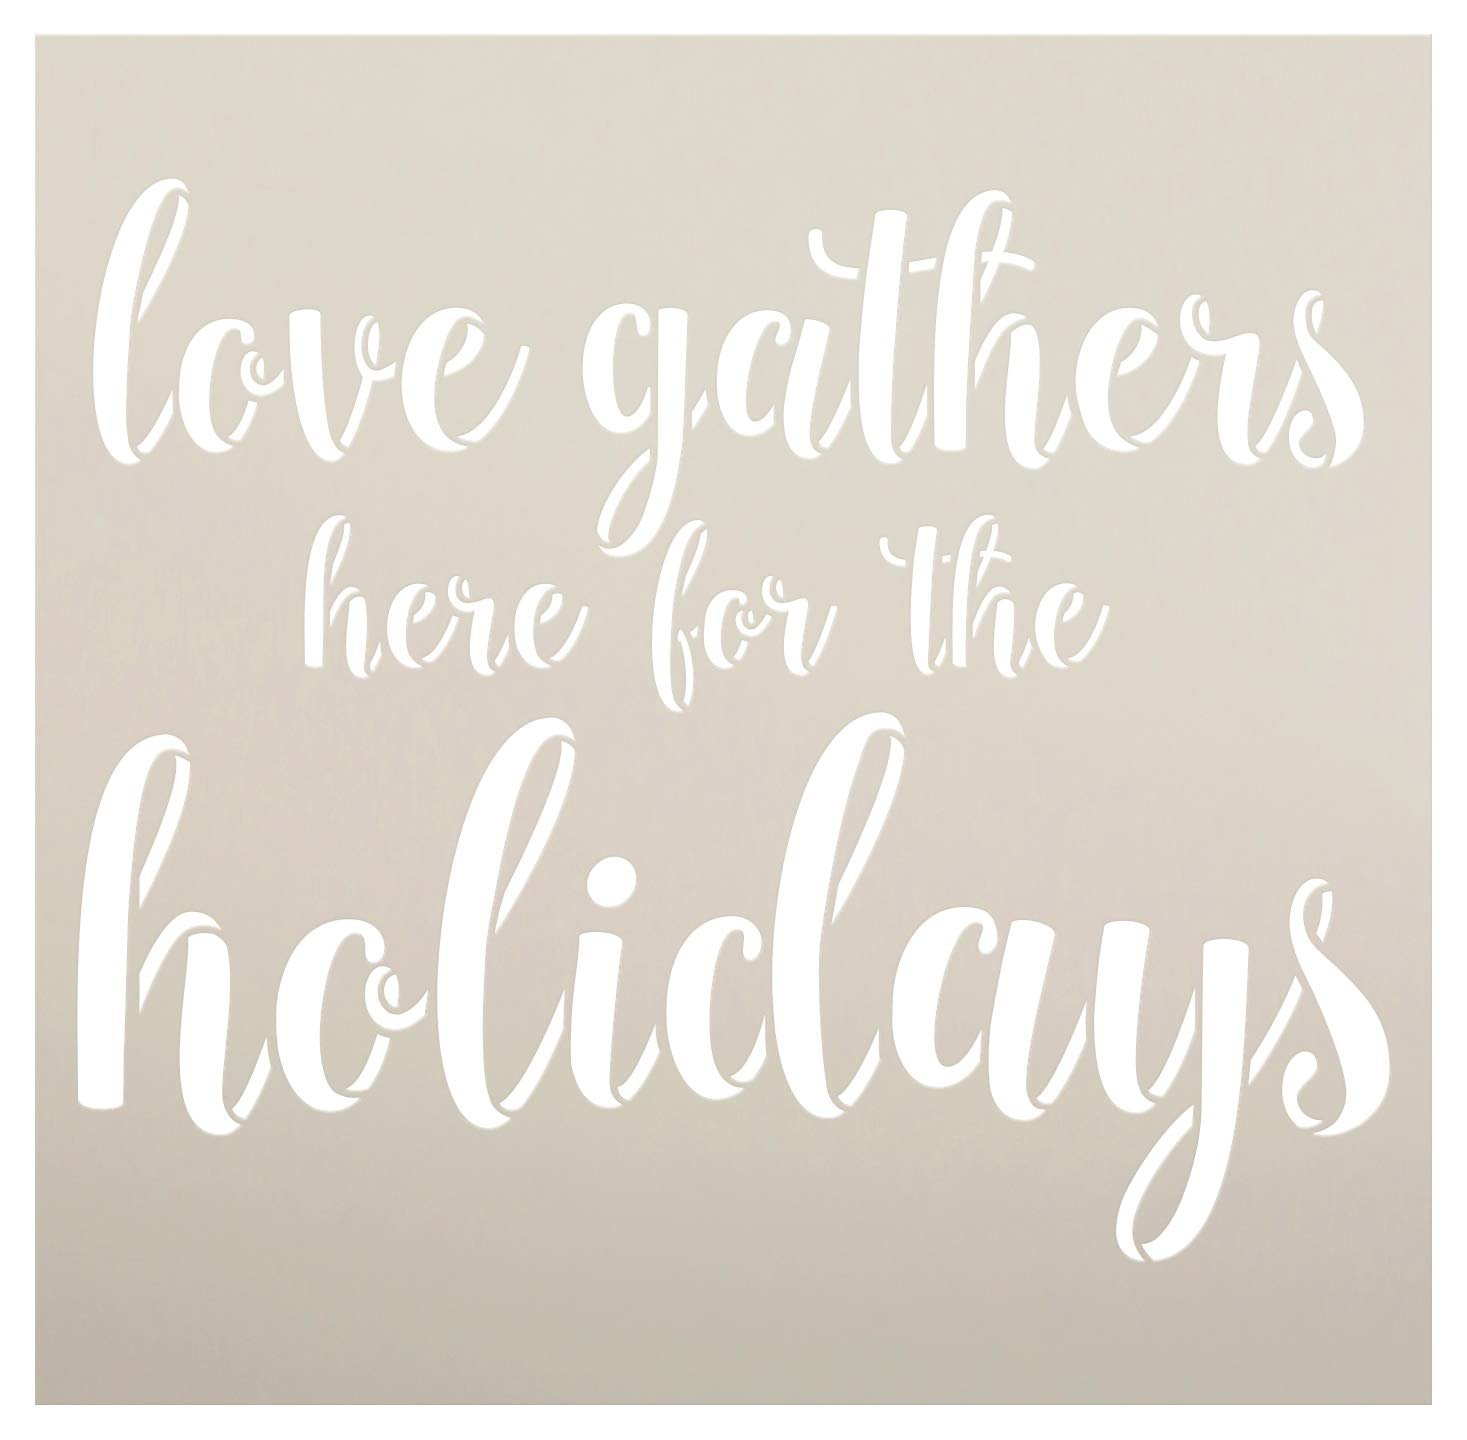 Love Gathers Here - Holidays Stencil by StudioR12 | Reusable Mylar Template | Paint Wood Sign | Craft Christmas Cursive Script Word Art | DIY Seasonal Home Decor Gift | Select Size